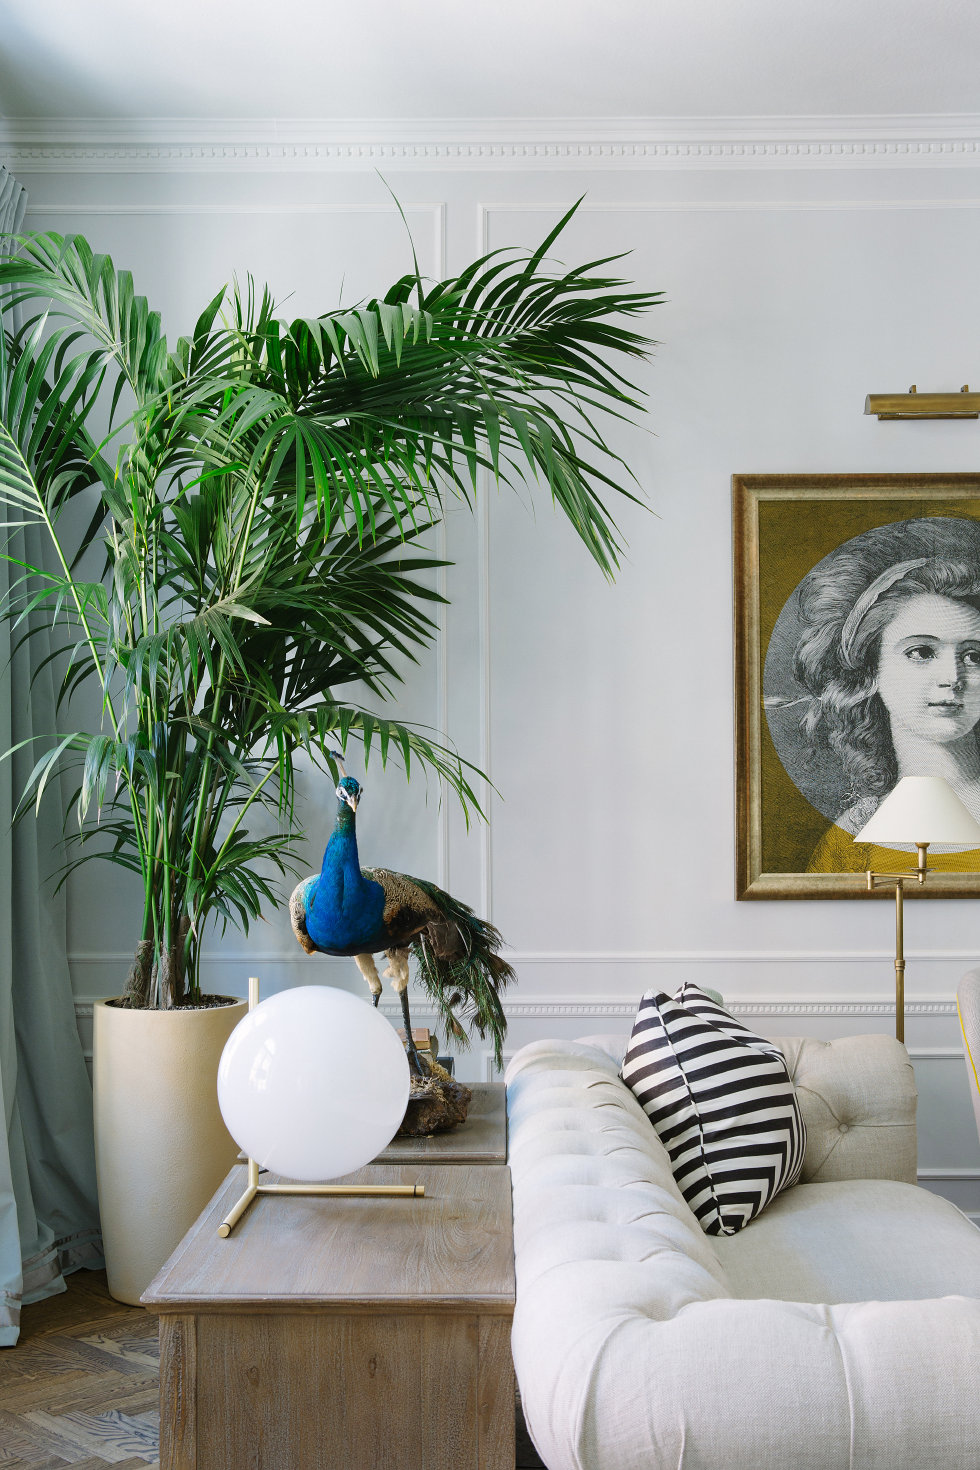 palm-tree-peacock-colours-traditional-french-parisian-apartment-loft-all-white-moulding-artwork-ideas-black-and-white-stripe-decor-trends-chevron-coastal-shop-room-ideas-makover.jpeg